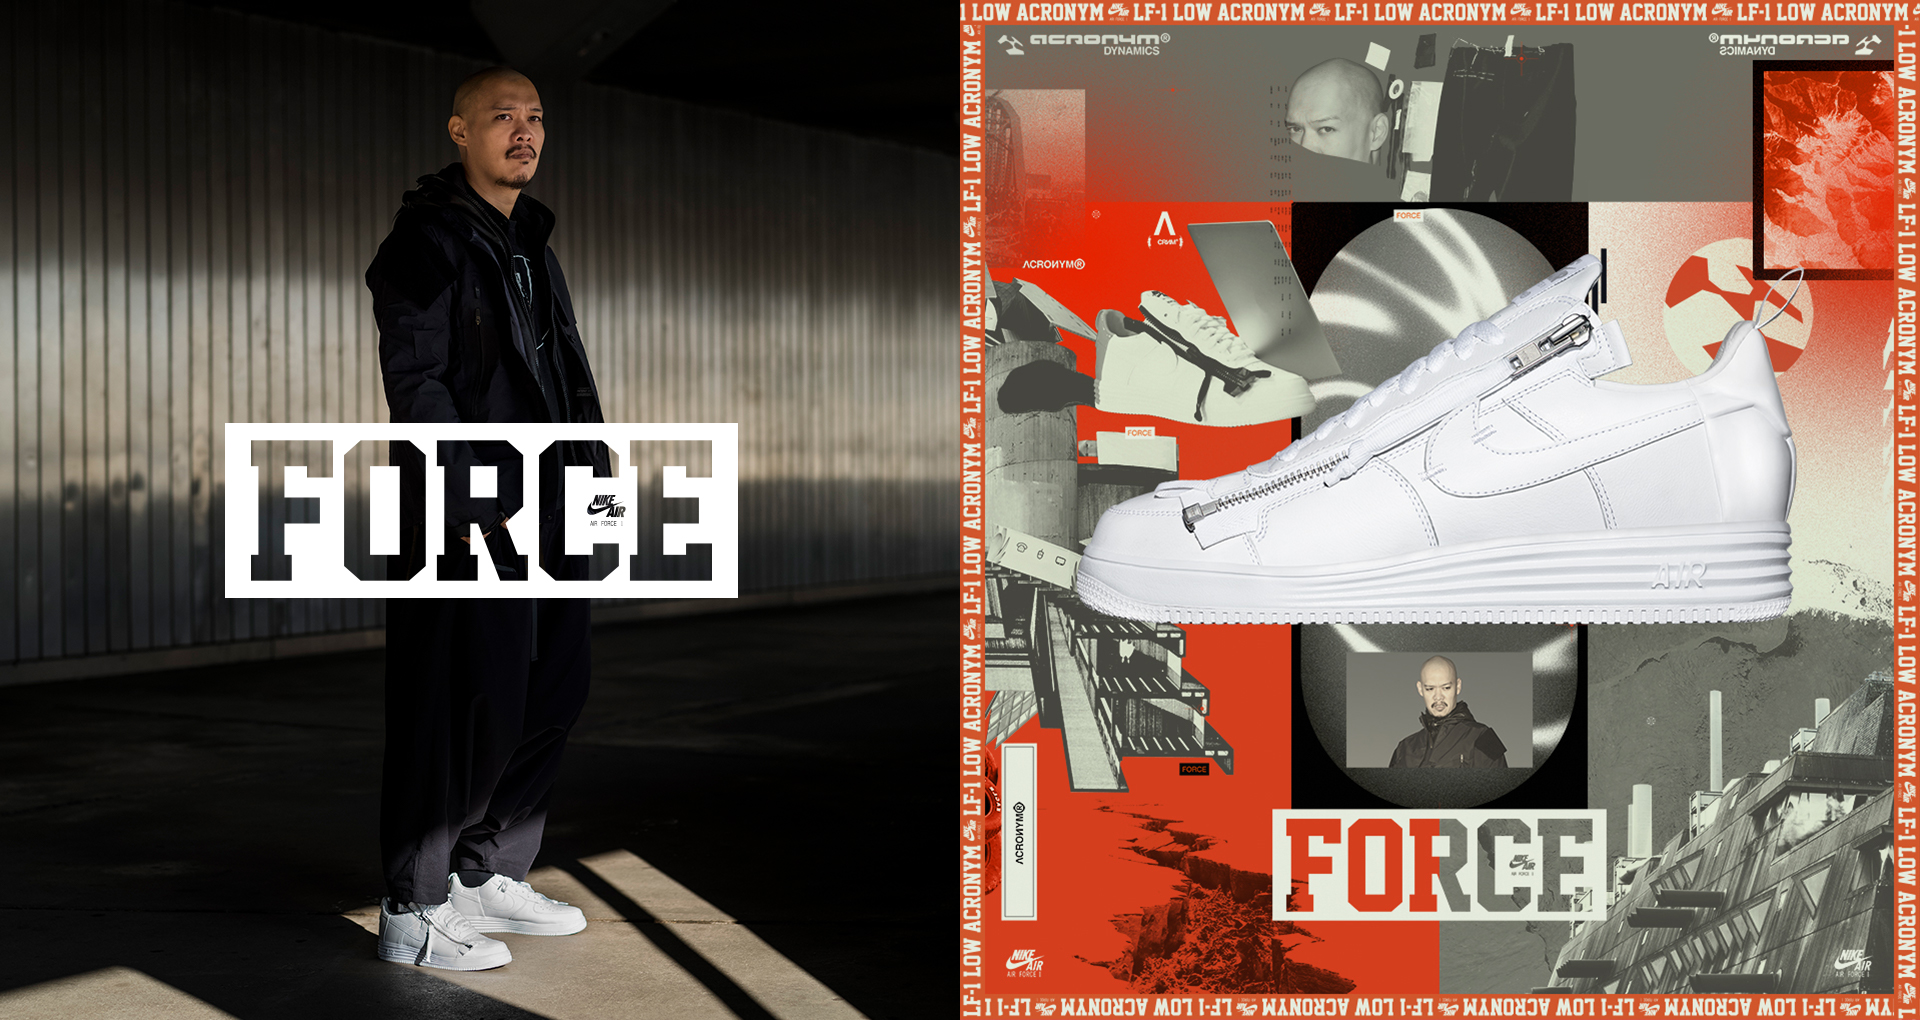 AF100 ランナー ルナフォース1 アクロニウム '17 byエロルソン・ヒュー【12/2発売】